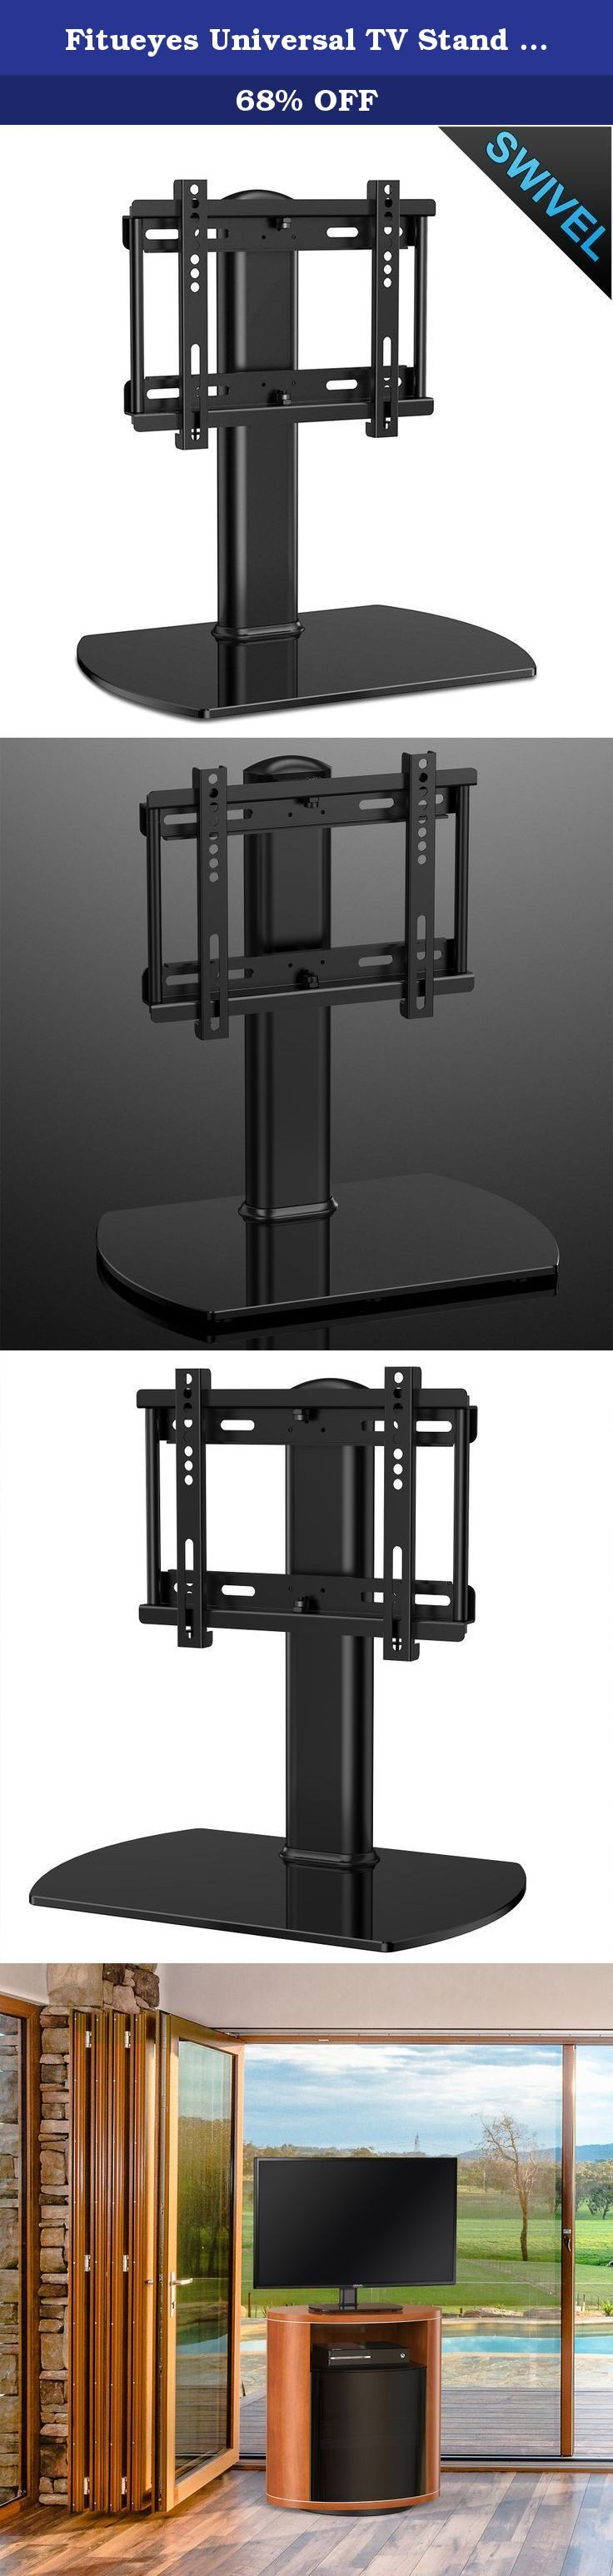 "Fitueyes Universal TV Stand /Base Swivel Tabletop TV Stand with mount for up to 37 inch Flat screen Tvs/xbox One/tv Component /Vizio Tv (TT104001GB). This universal tv stand looks simple, elegant and won't take a lot of sapce. This Universal TV Stand is your solution. It's small space size make it perfect for TV and can still hold your components and DVDs! The included mount holds up to a 37"" TV and hides all your cords down the back panel."